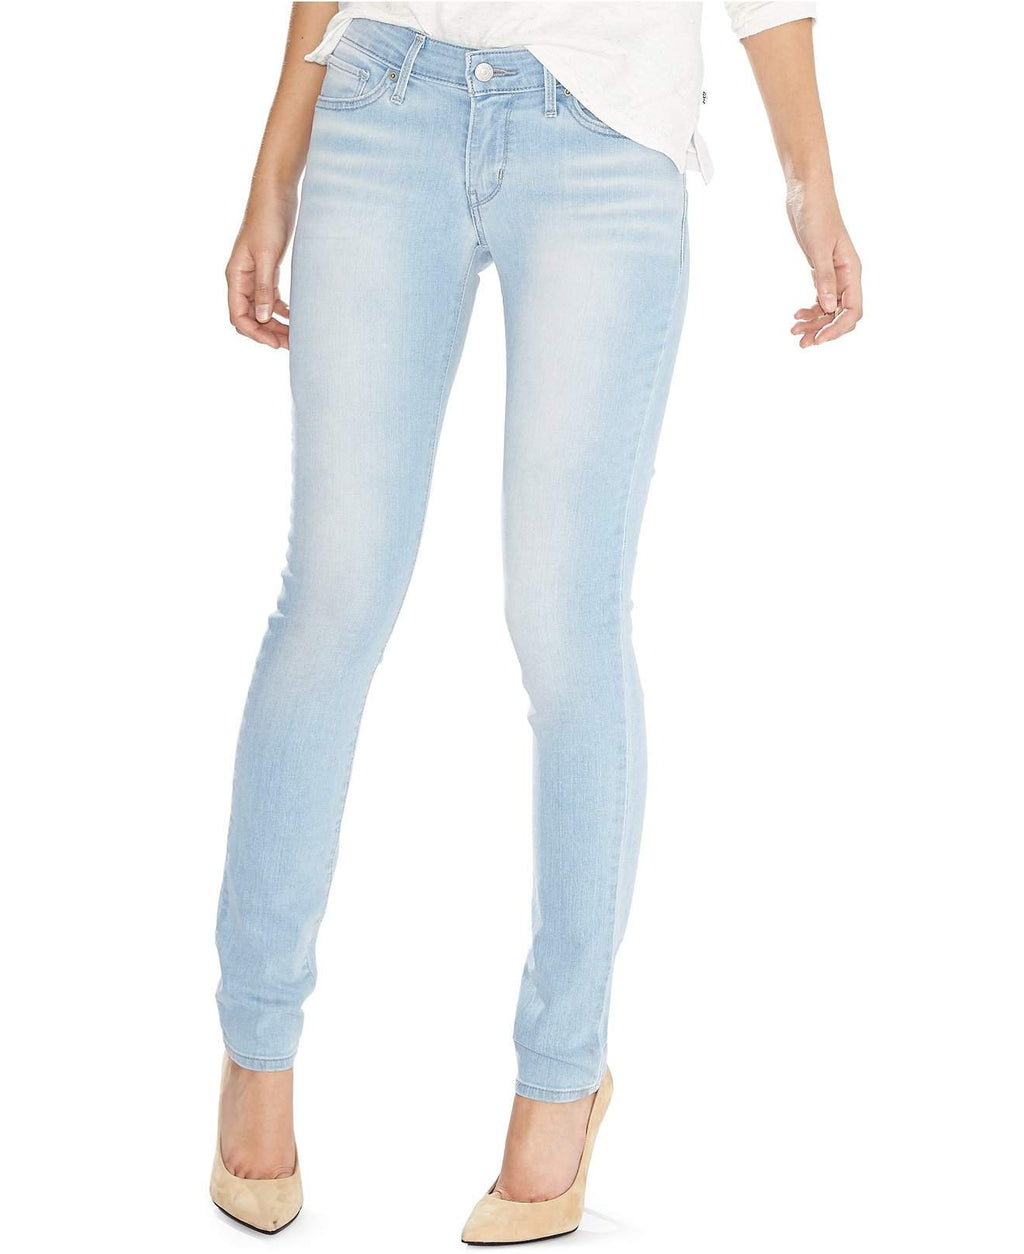 Levi's Tan 811 Curvy Skinny Jeans by Levi's - My100Brands